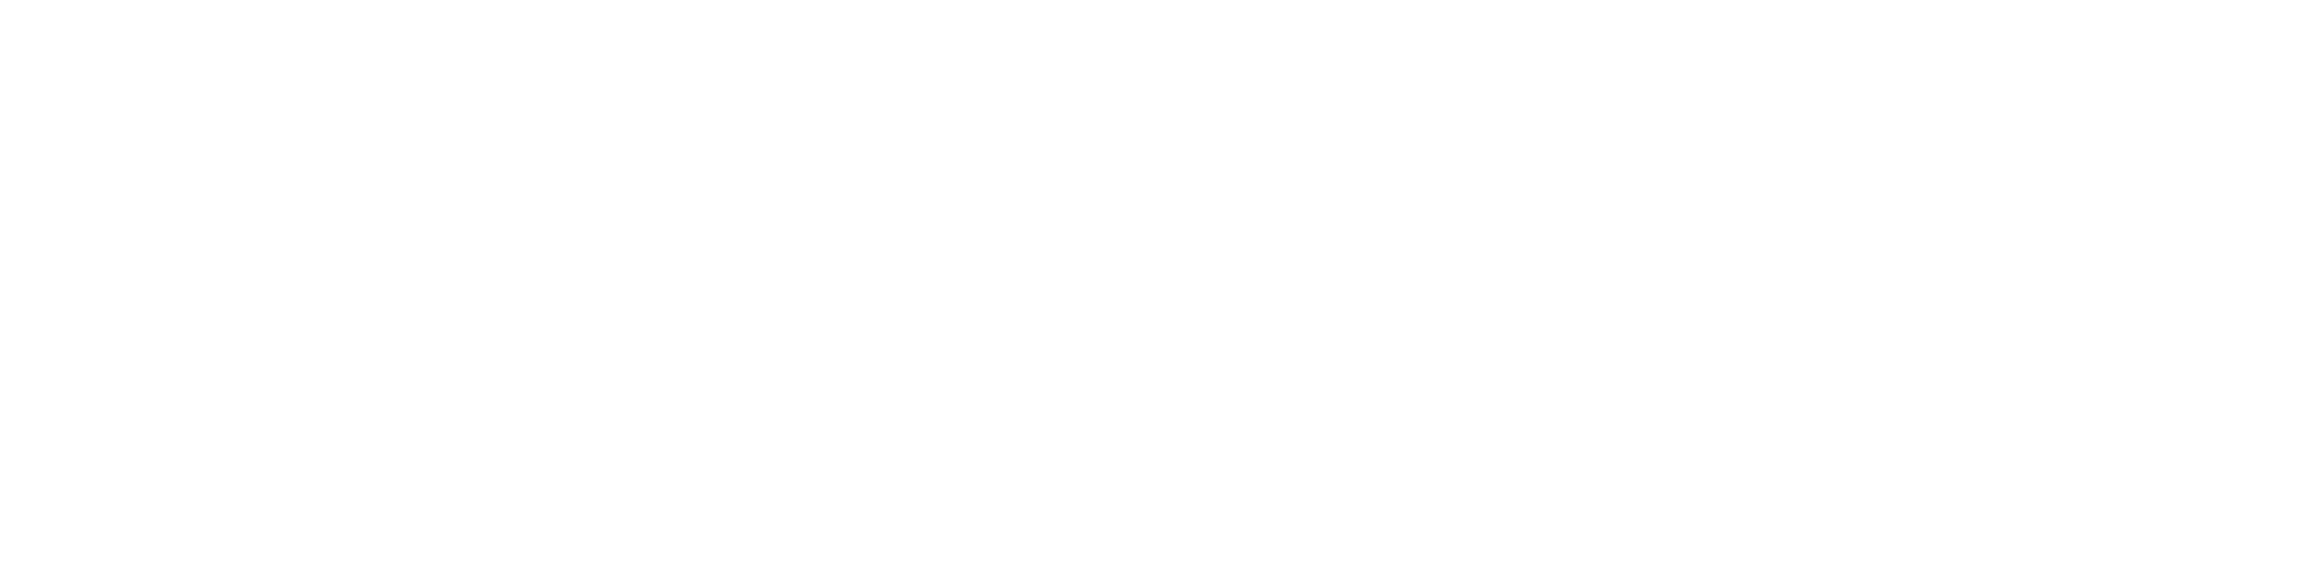 Comms Connect Series